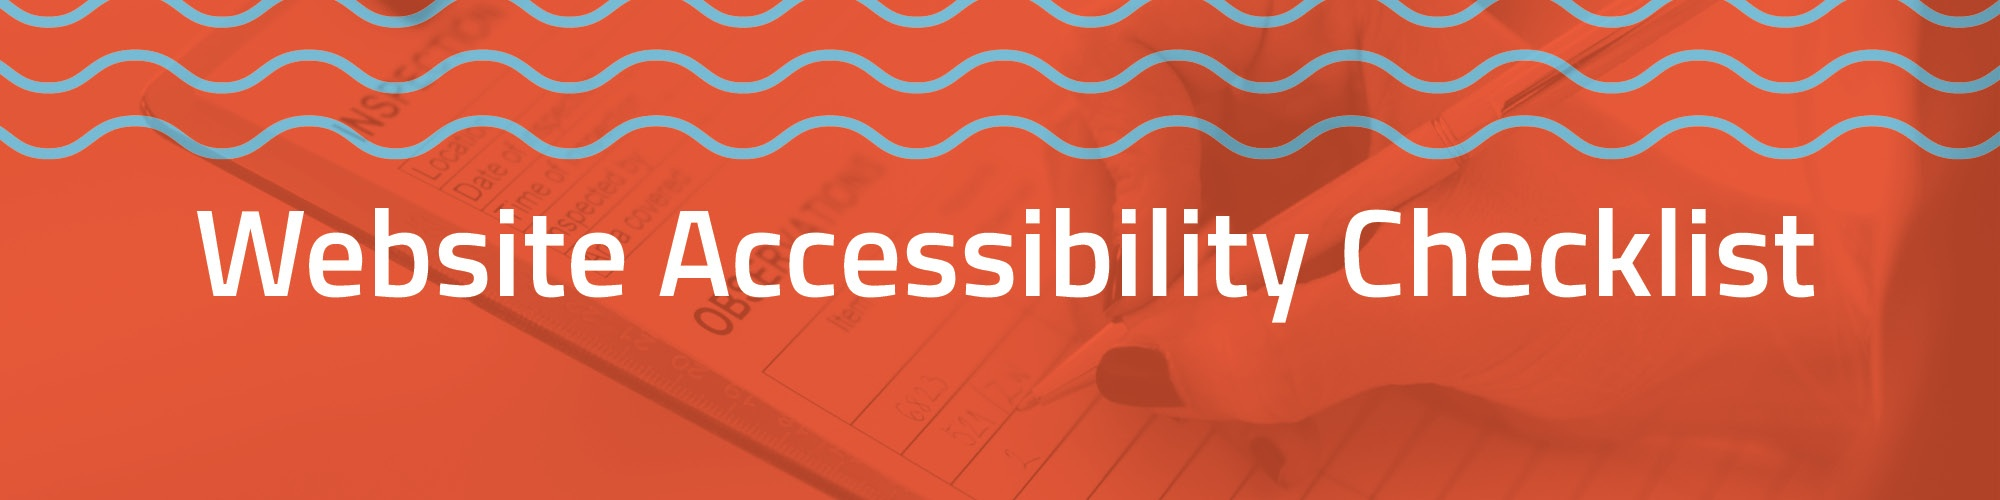 Website Accessibility Checklist_Header.jpg